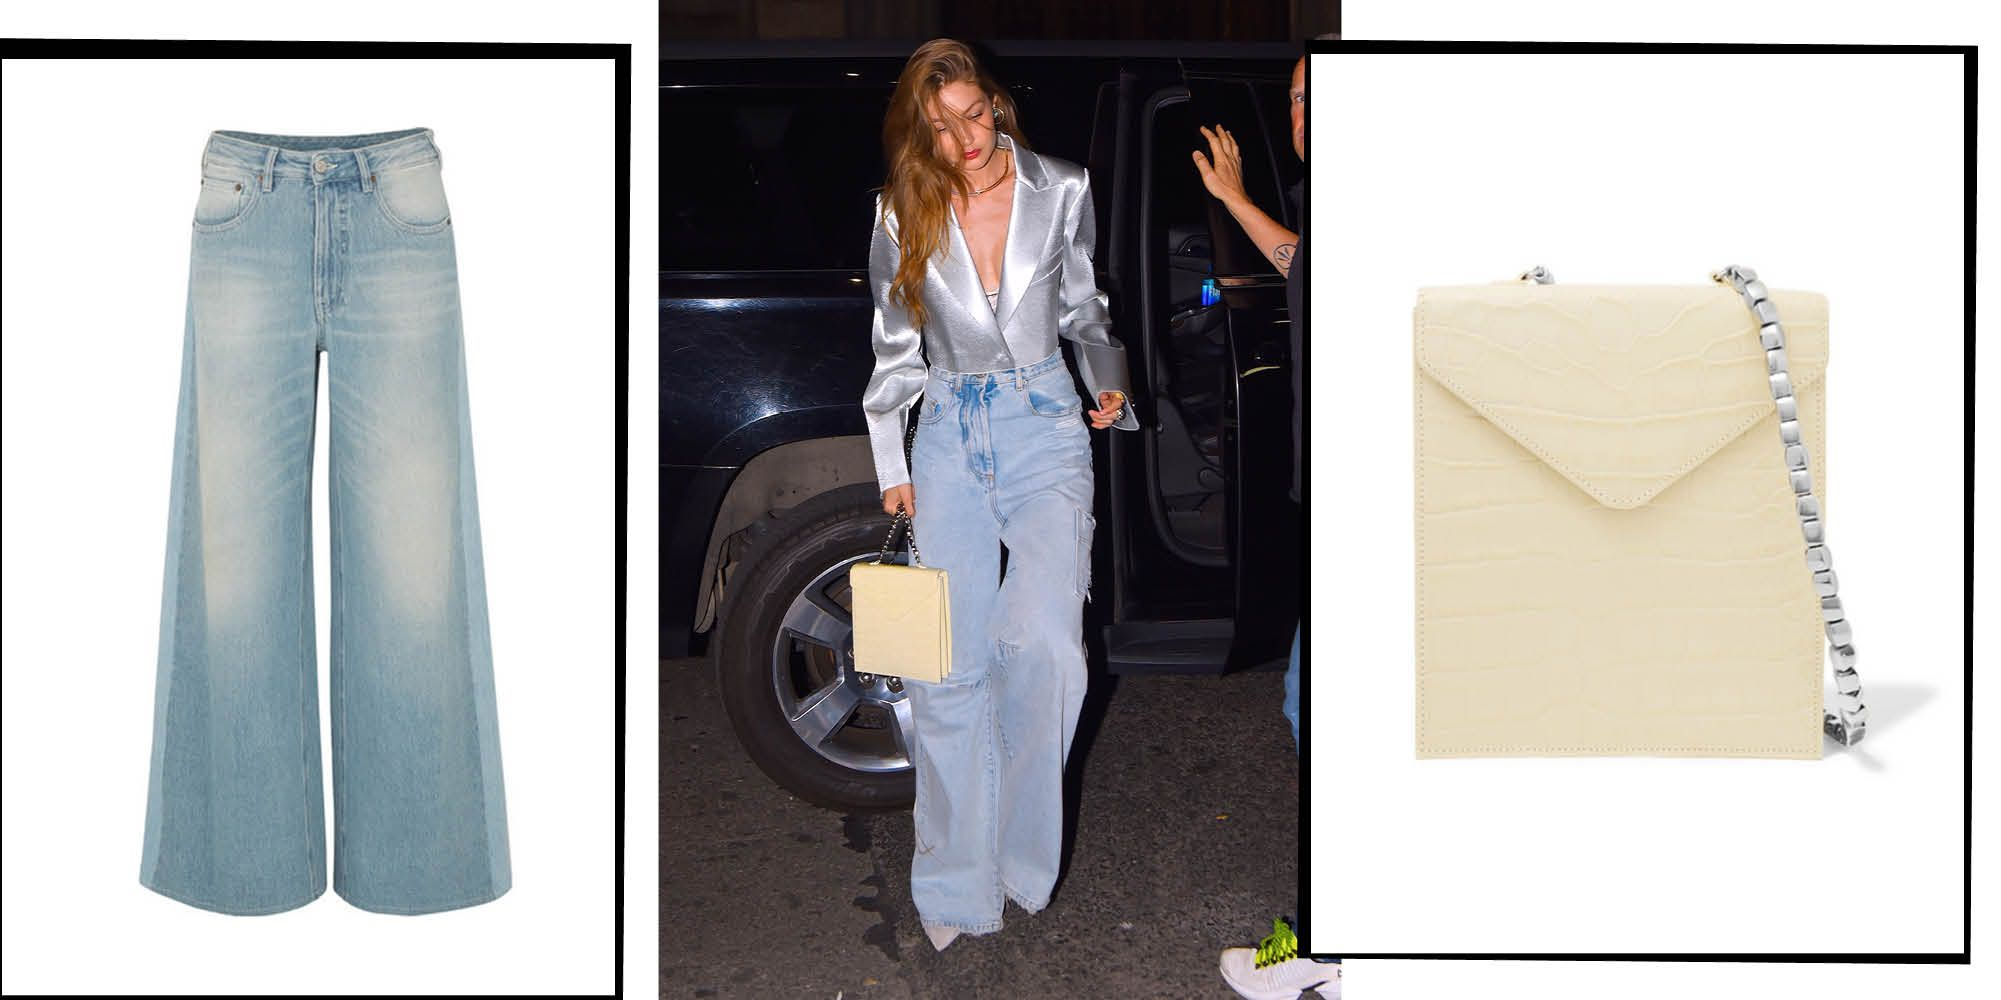 Gigi Hadid date night outfit